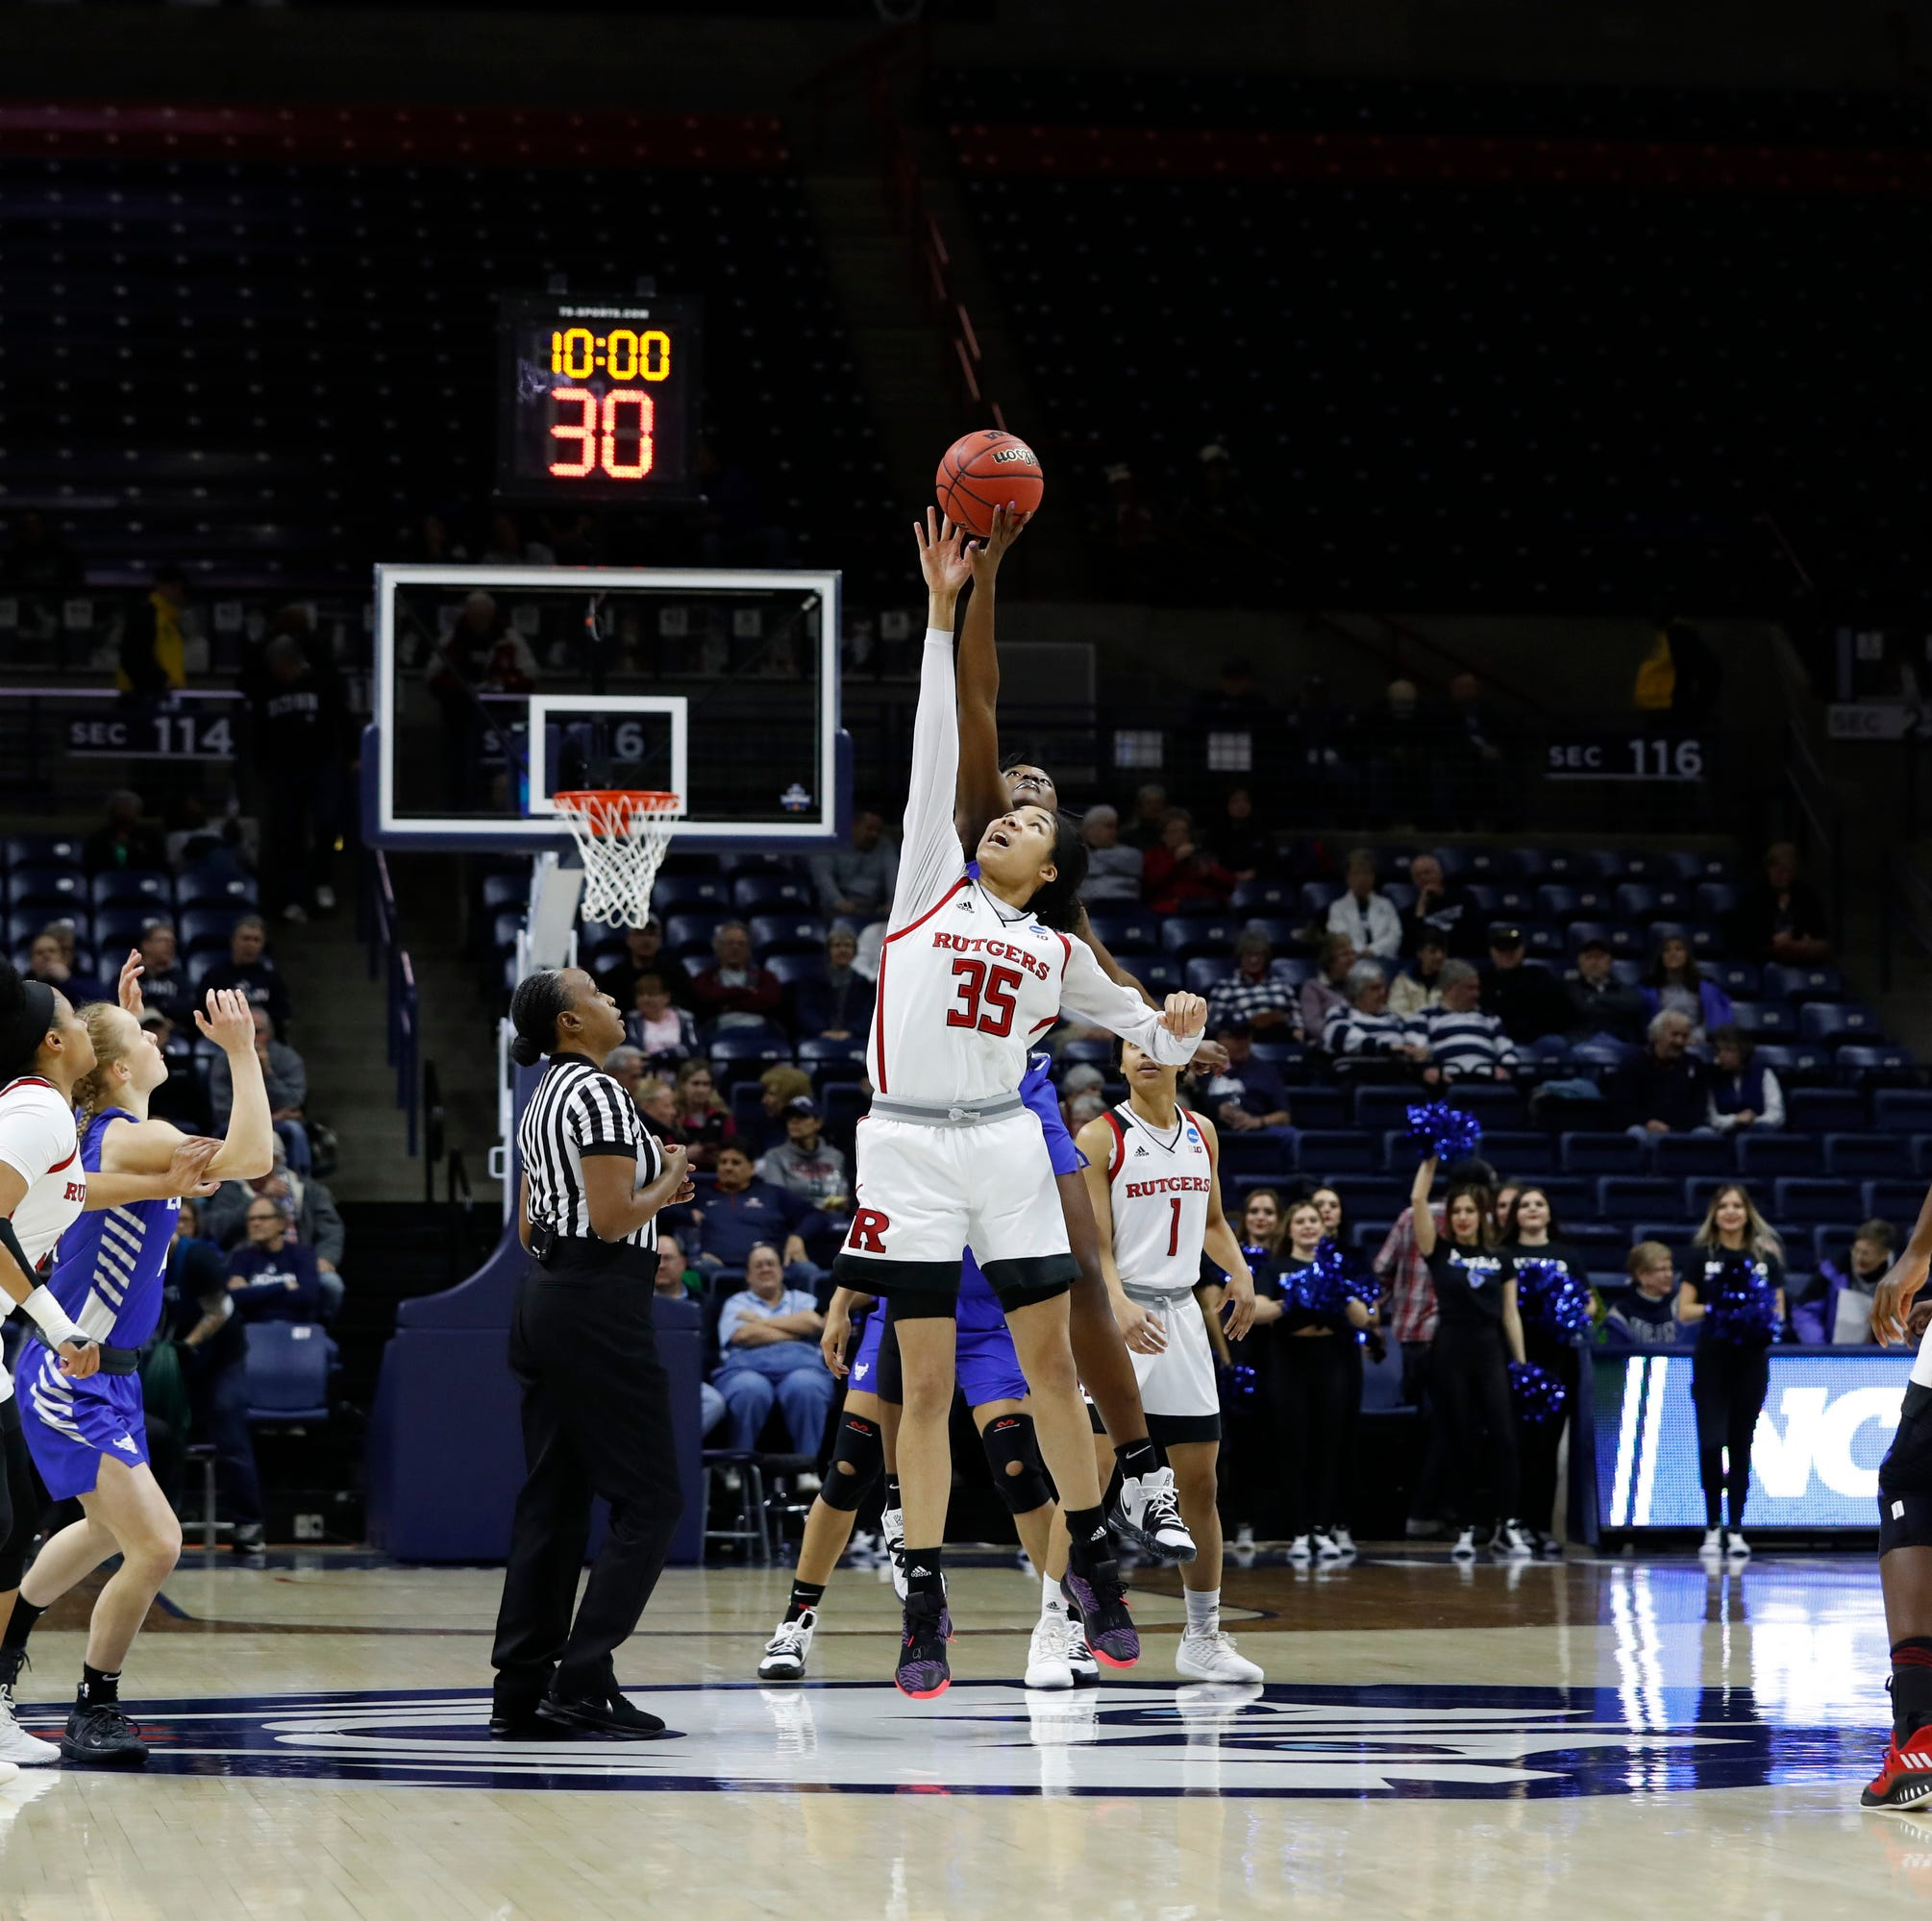 NCAA Women's Tournament 2019: Rutgers falls to Buffalo; Stringer's NCAA bonuses end at $50K